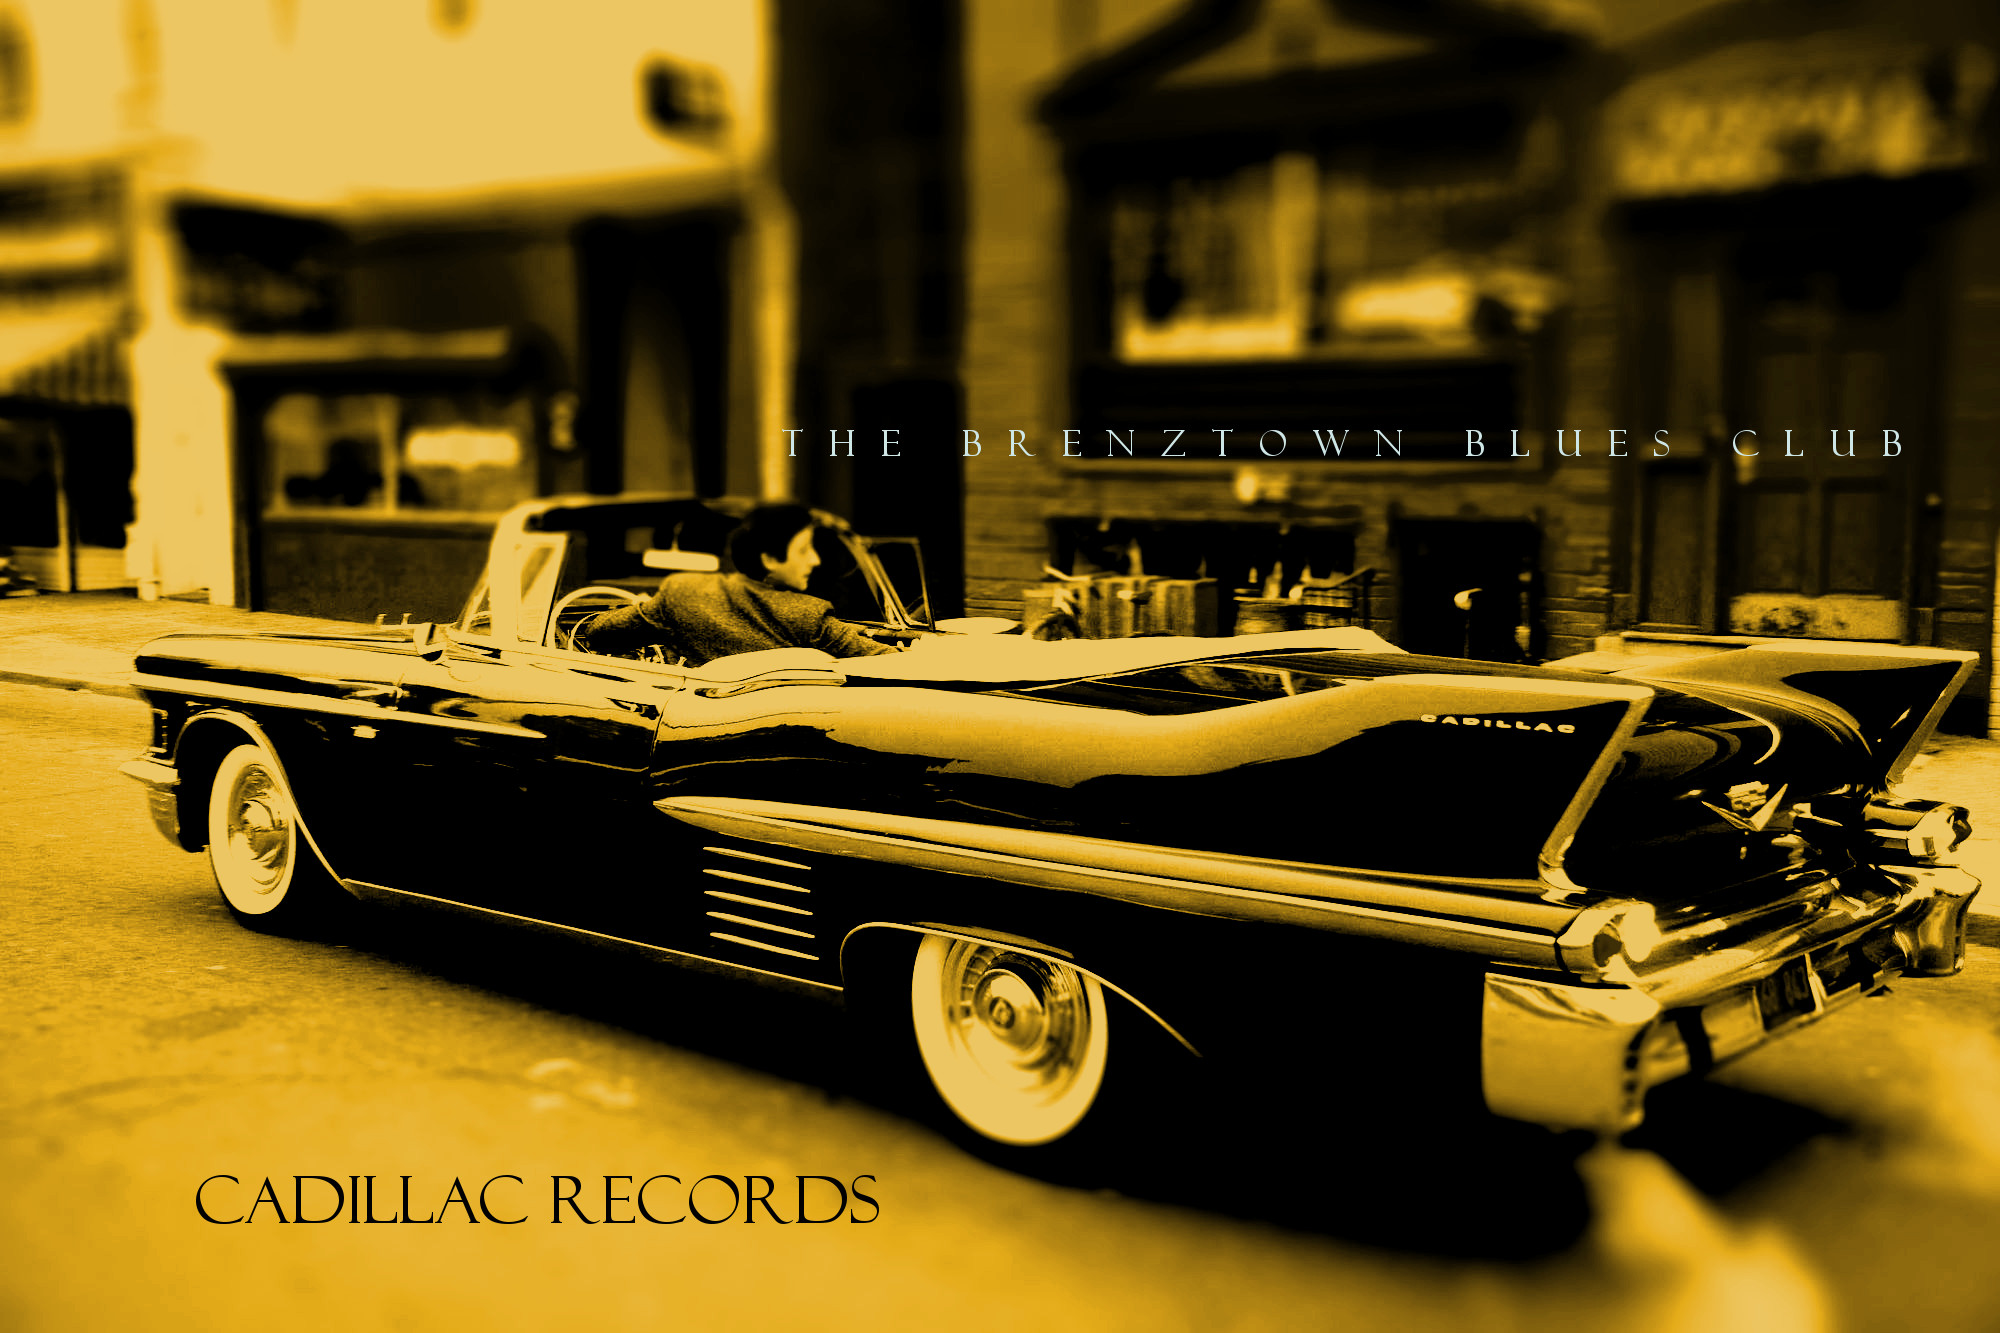 cadillac_records22-tiltshift